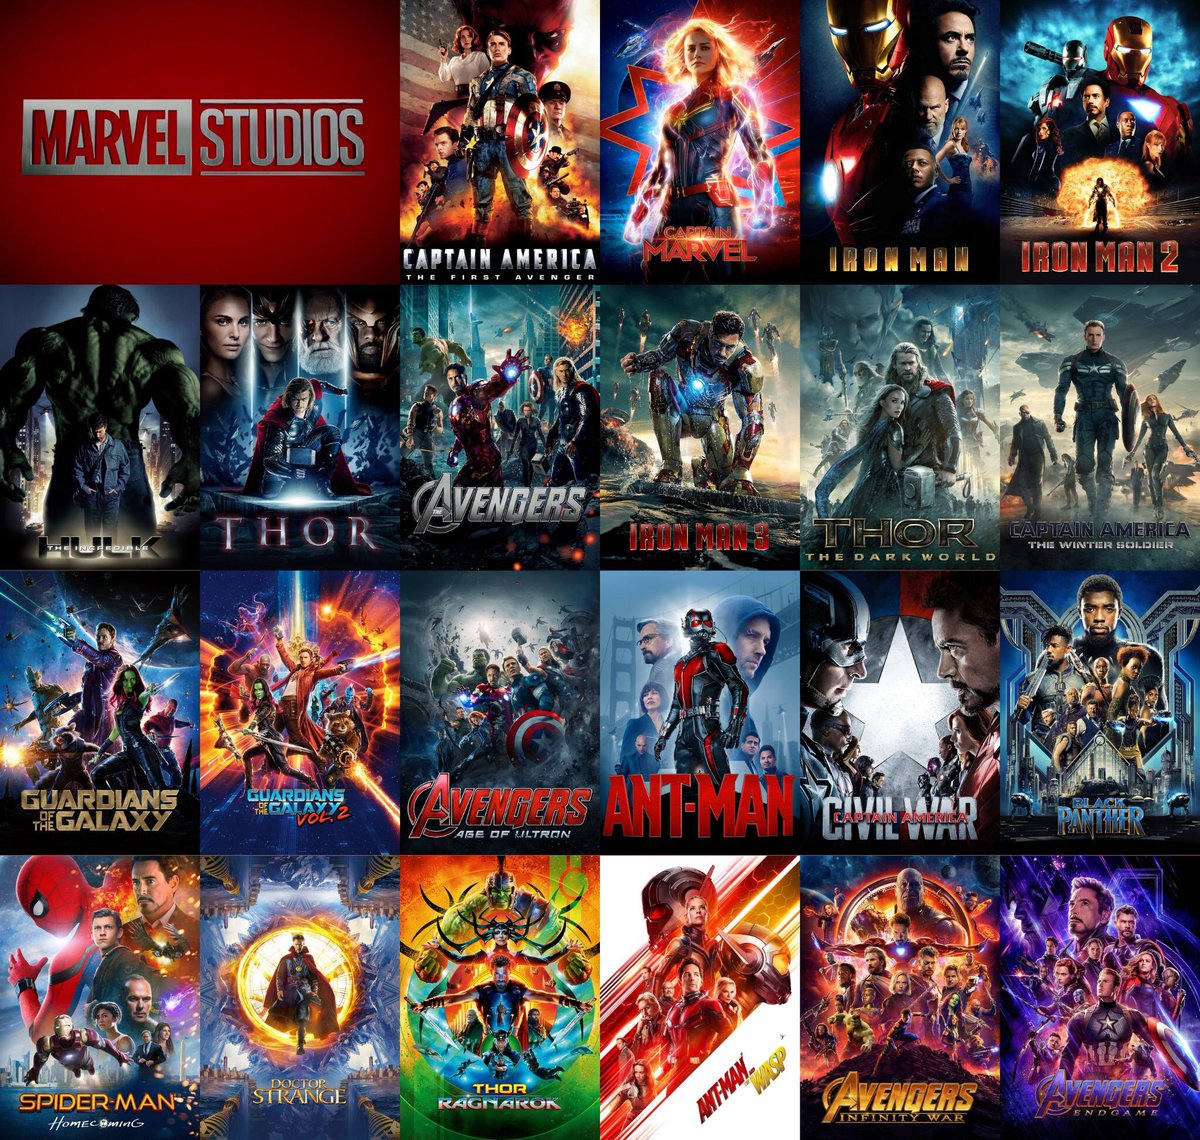 11 years  22 movies  1 universe  Millions of hearts   #ThankYouAvengers